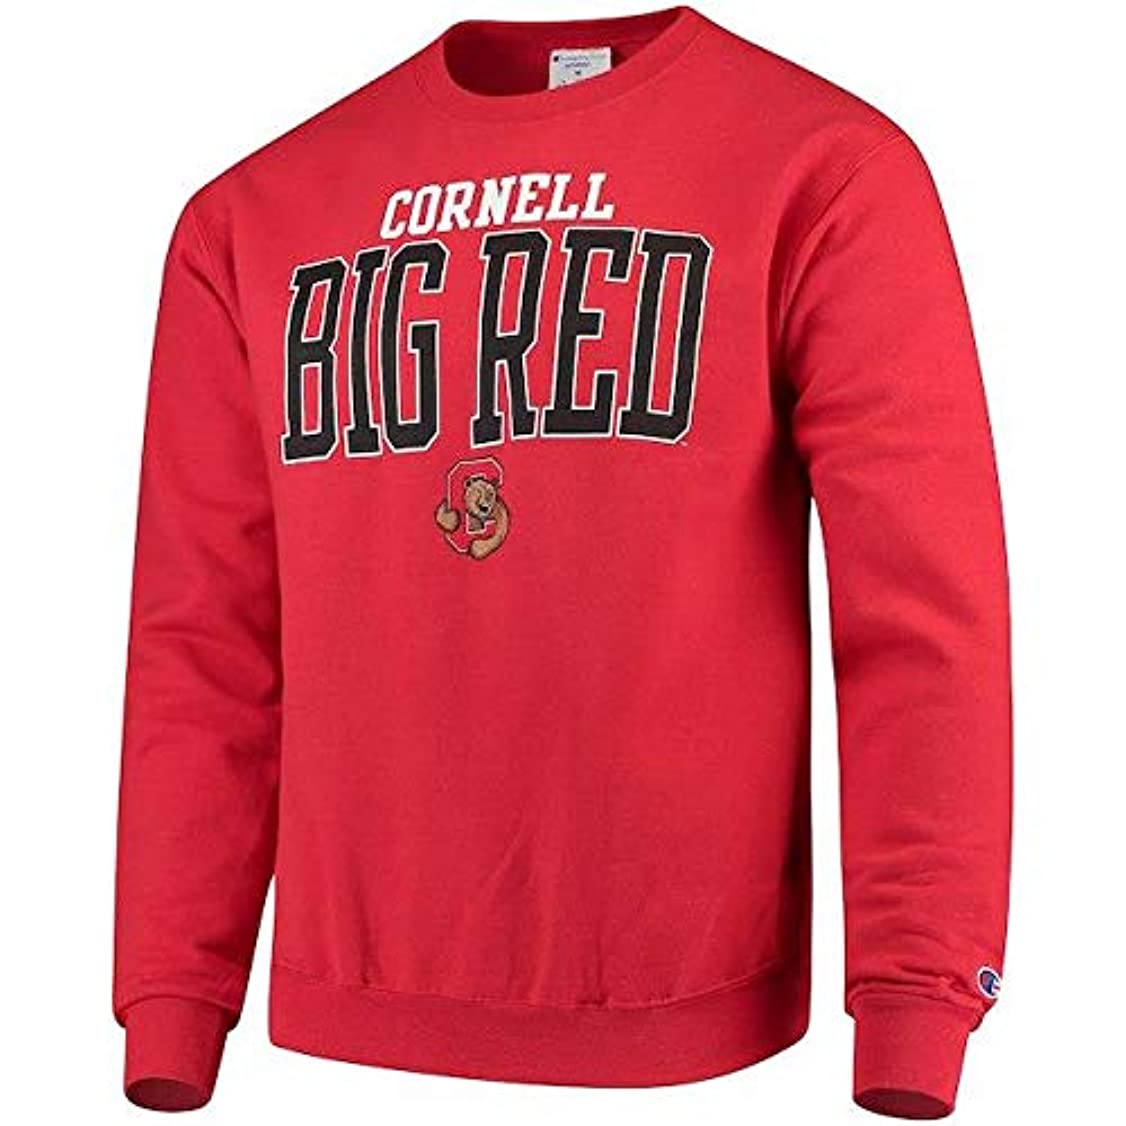 キャプション池スカートChampion Champion Cornell Big Red Red Eco Powerblend Expansion Pullover Sweatshirt スポーツ用品 【並行輸入品】